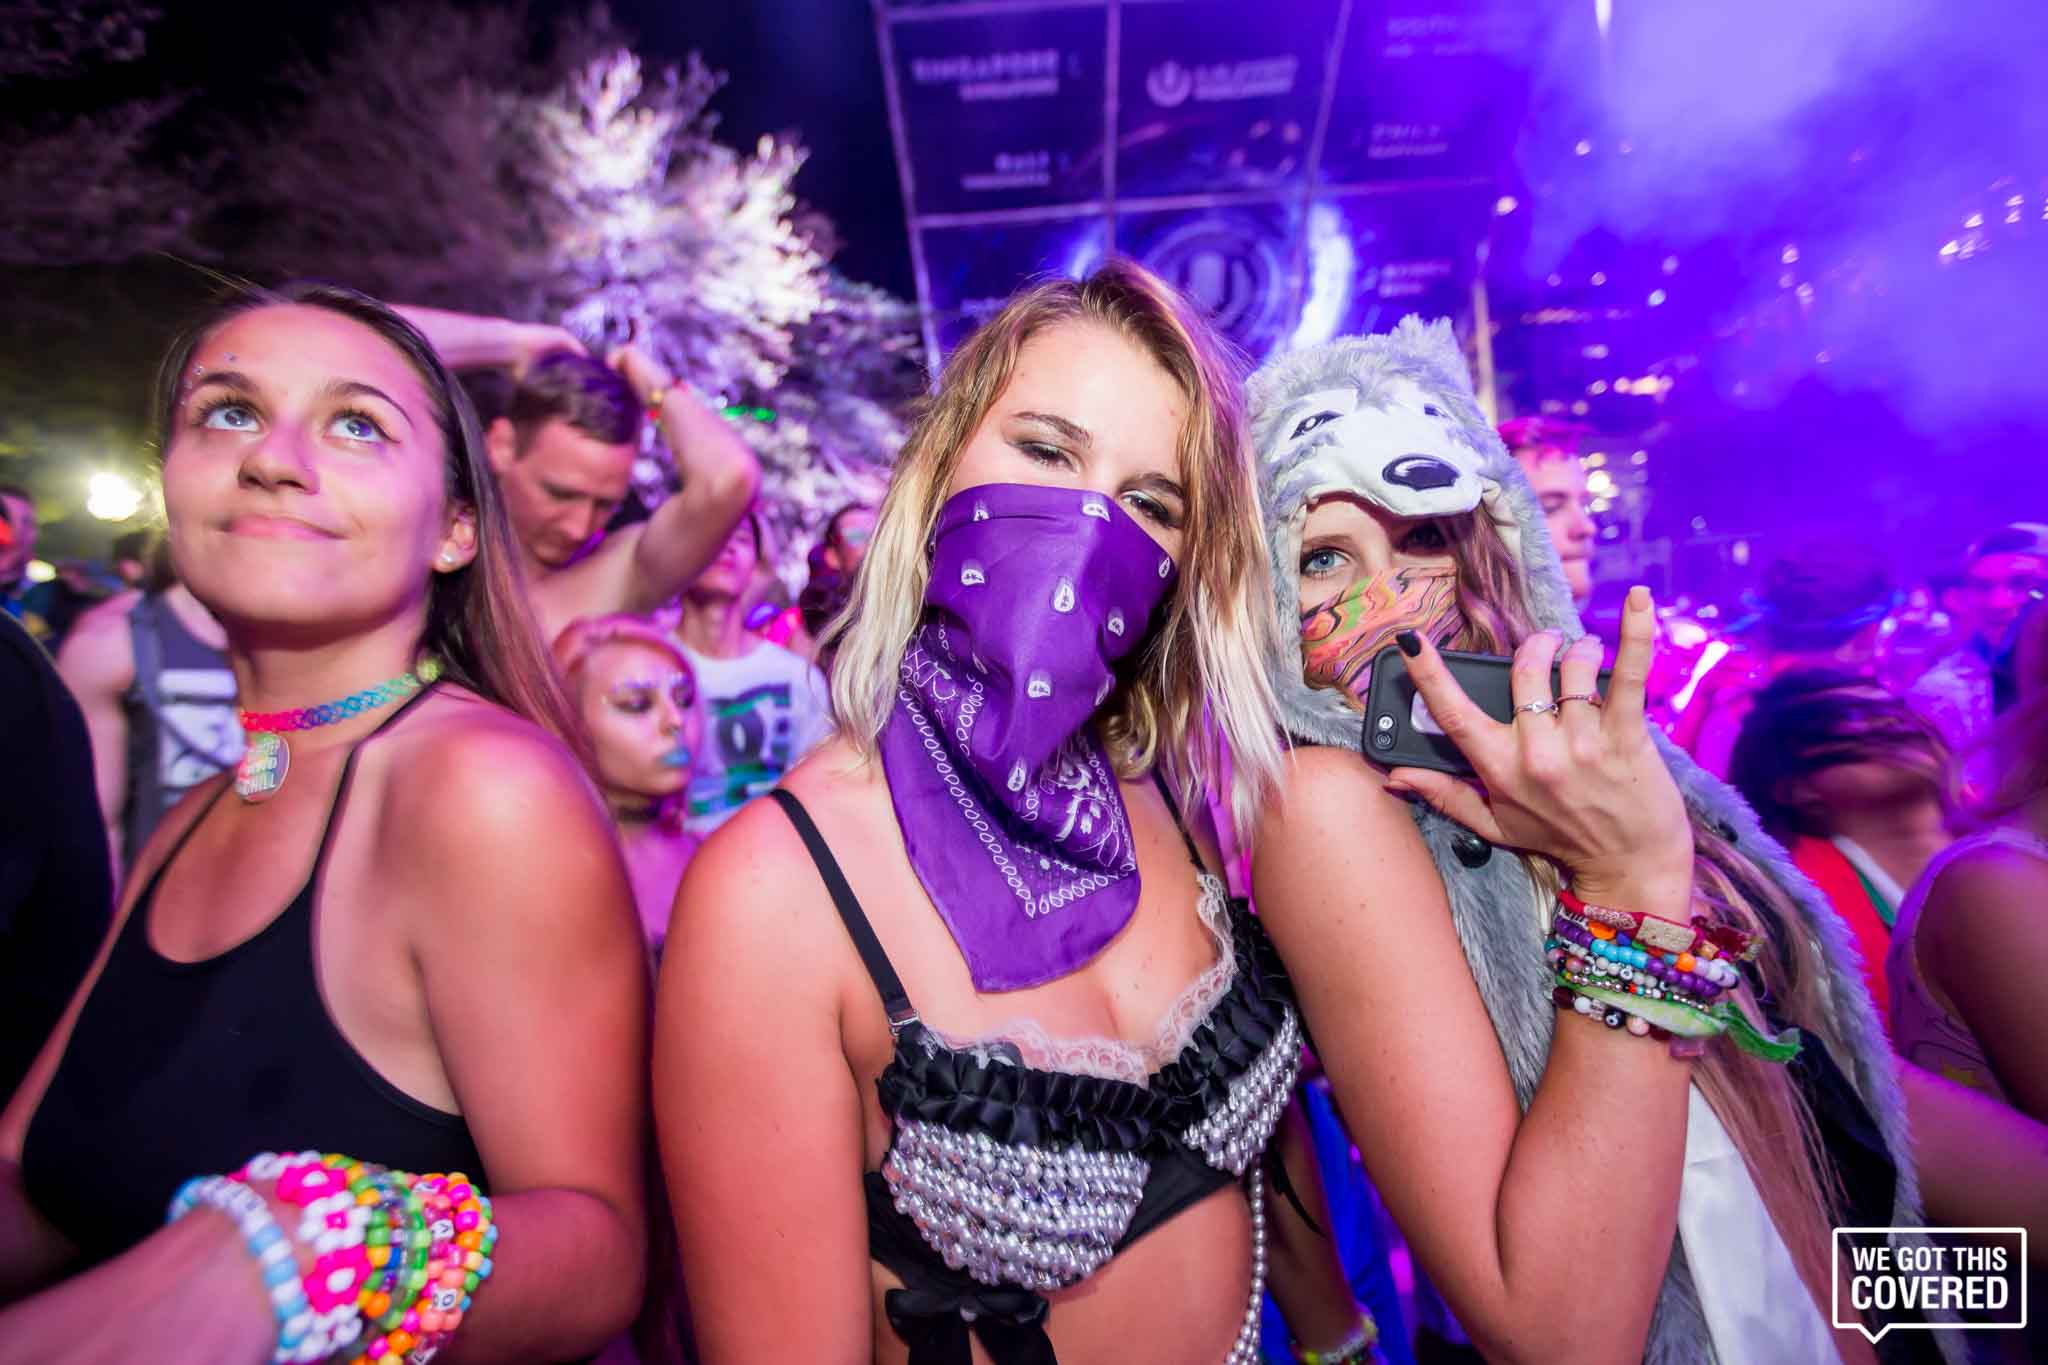 Gallery: Ultra Music Festival 2016 - Day 1